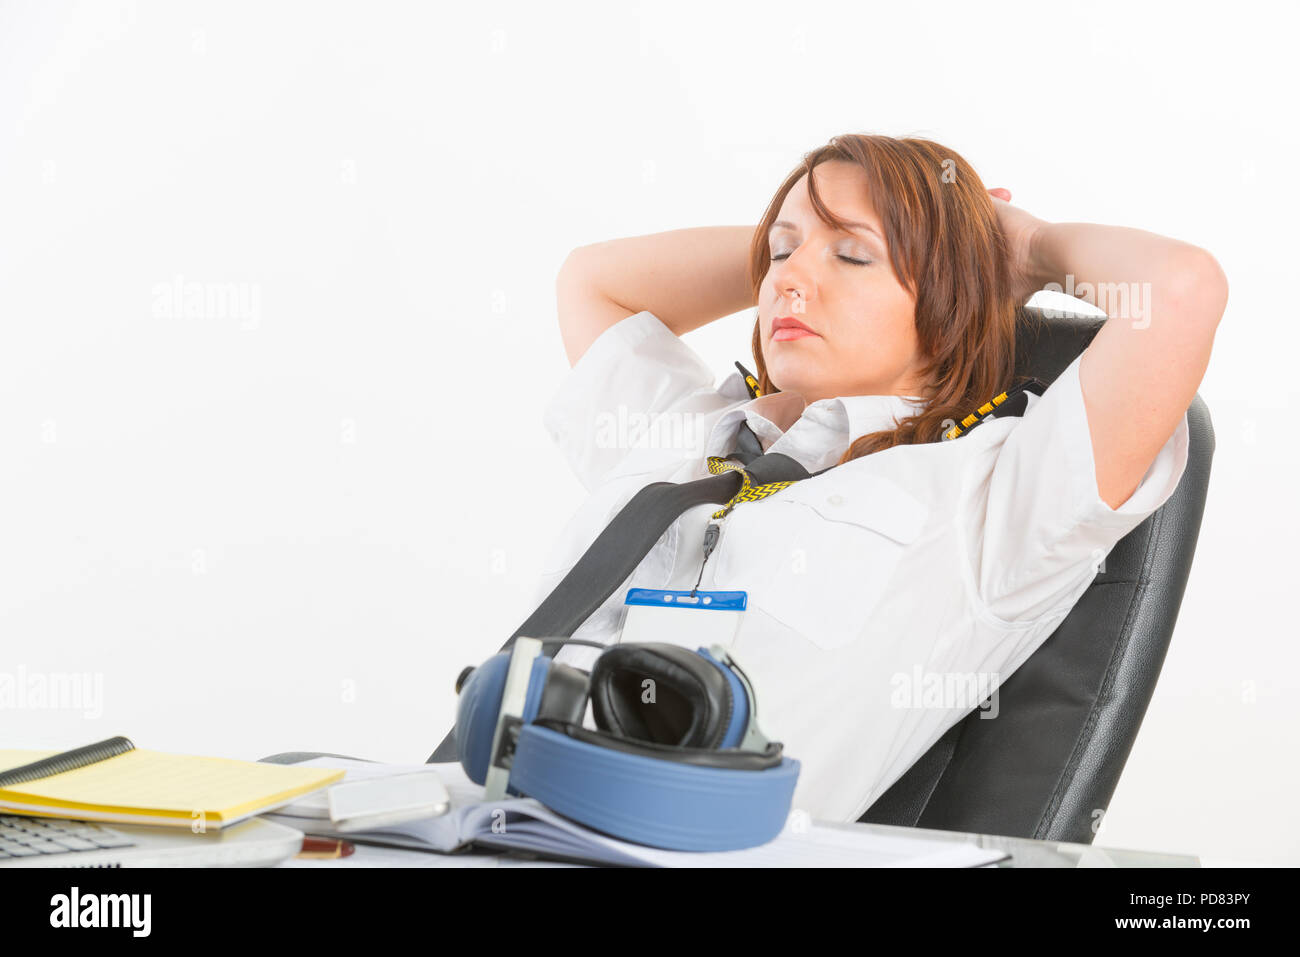 Overworked woman pilot wearing uniform with epaulettes resting or sleeping in briefing room - Stock Image